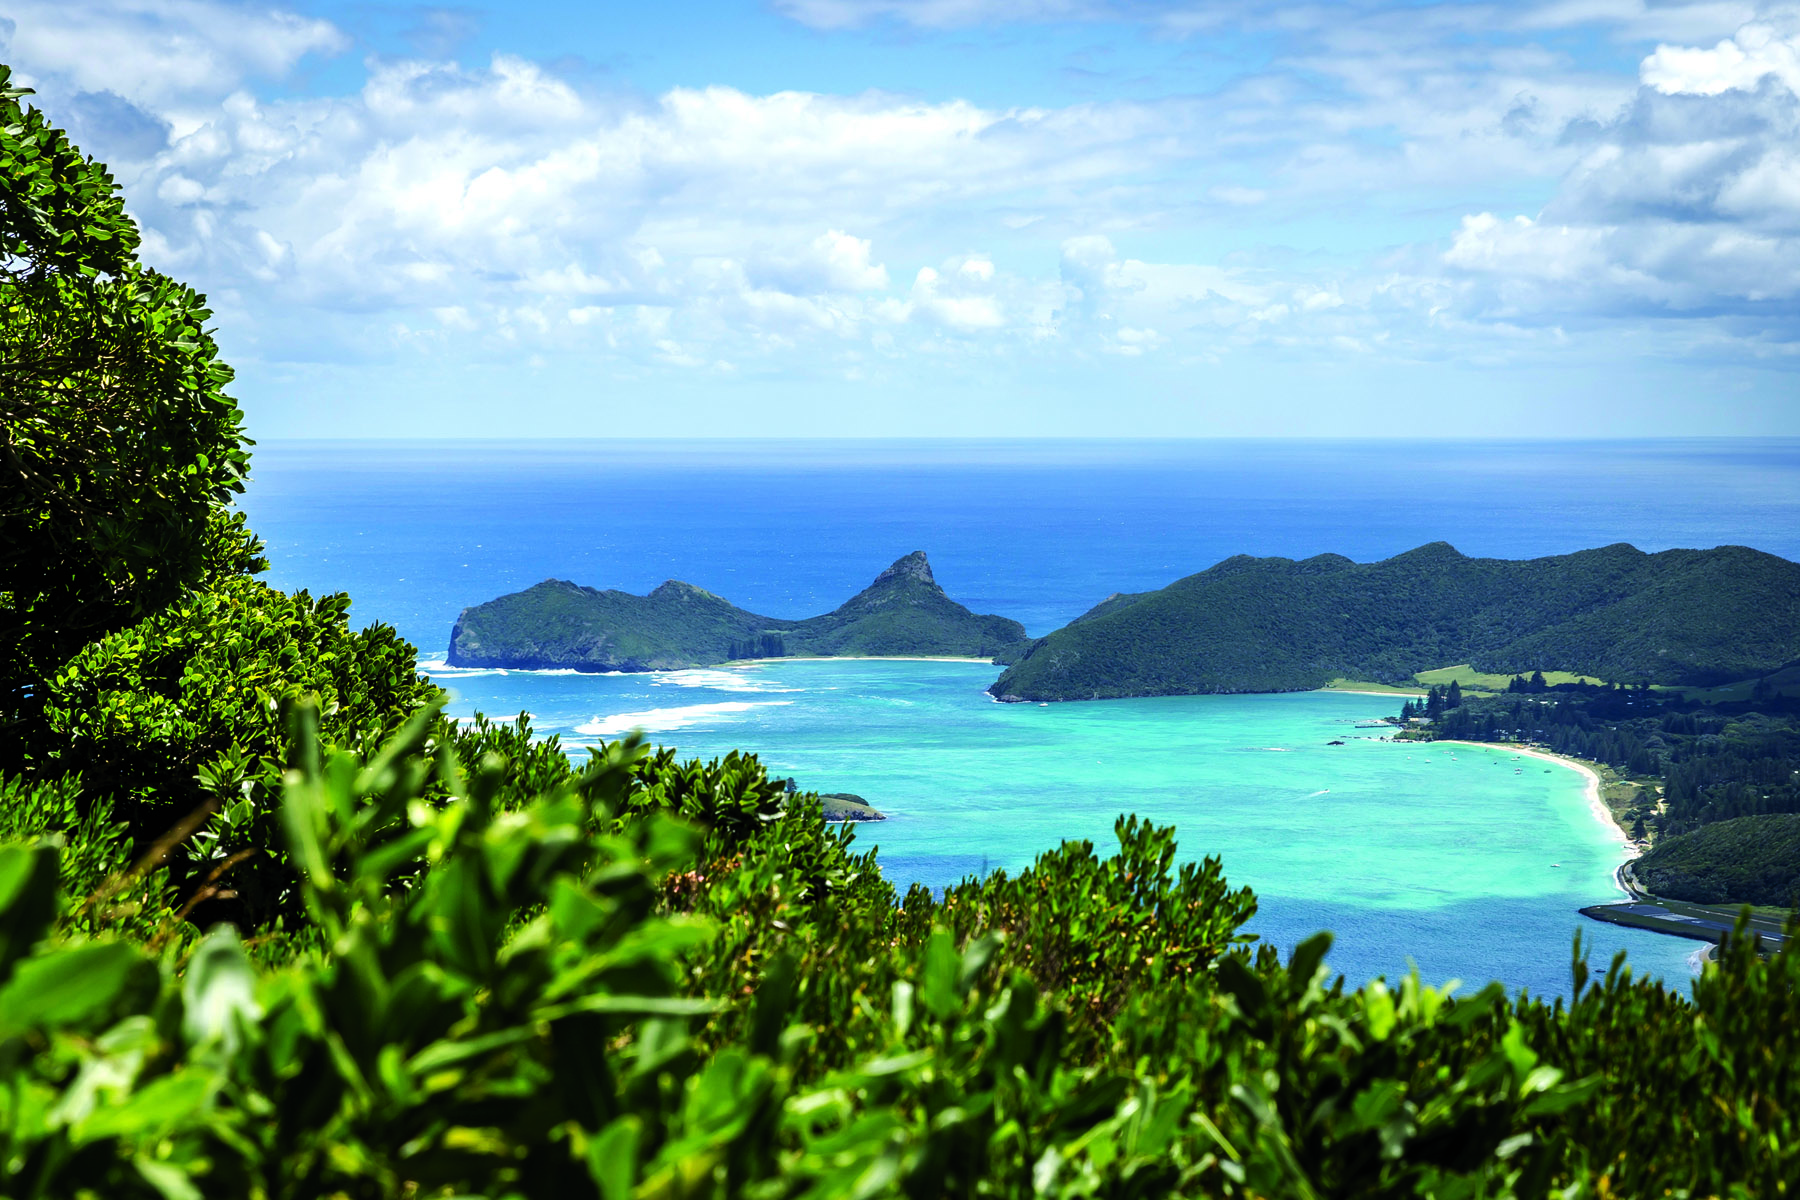 It's easy to vibe the scenery on Lord Howe Island